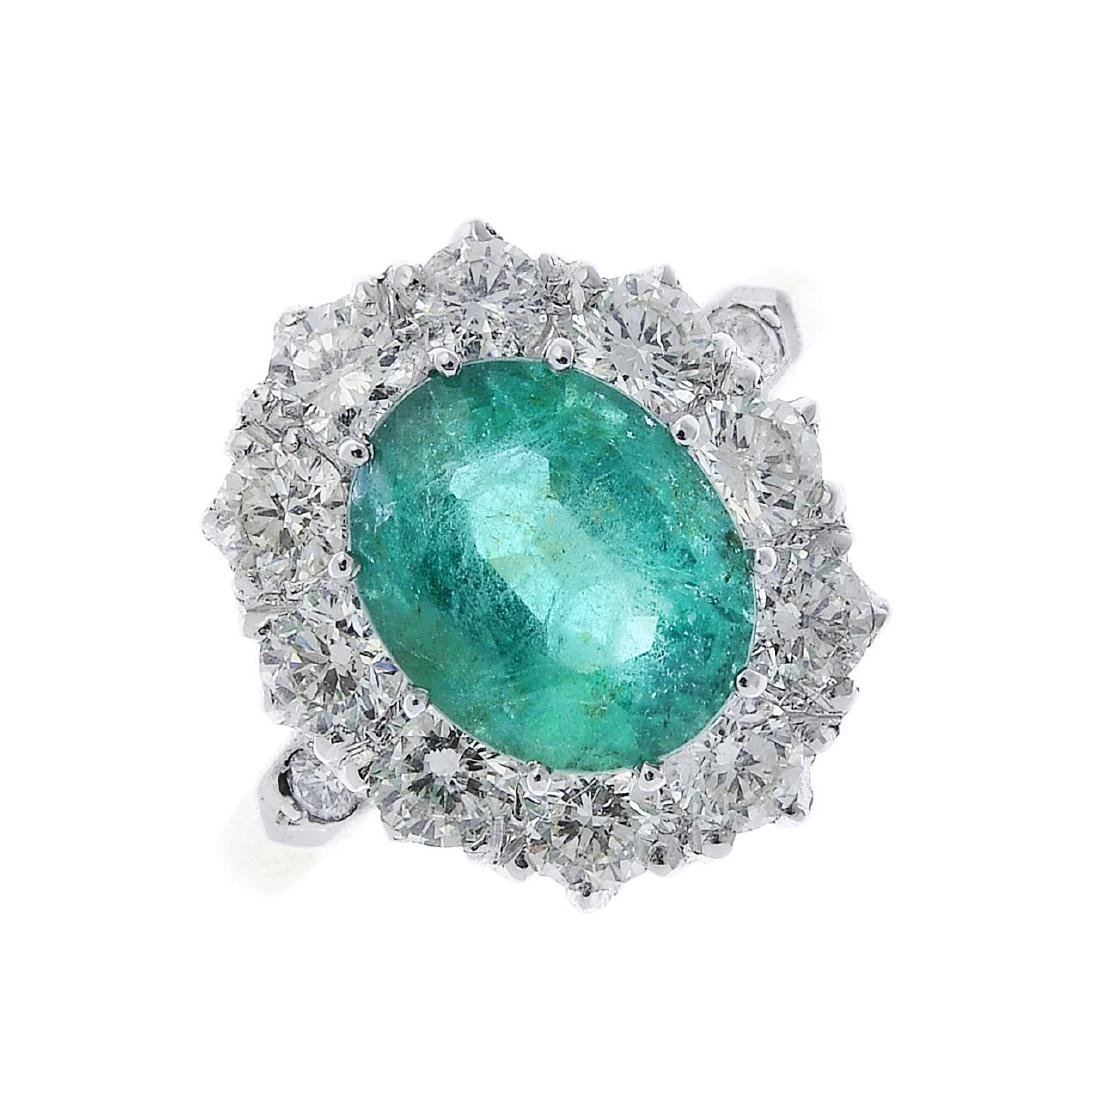 An emerald and diamond cluster ring. The oval-shape